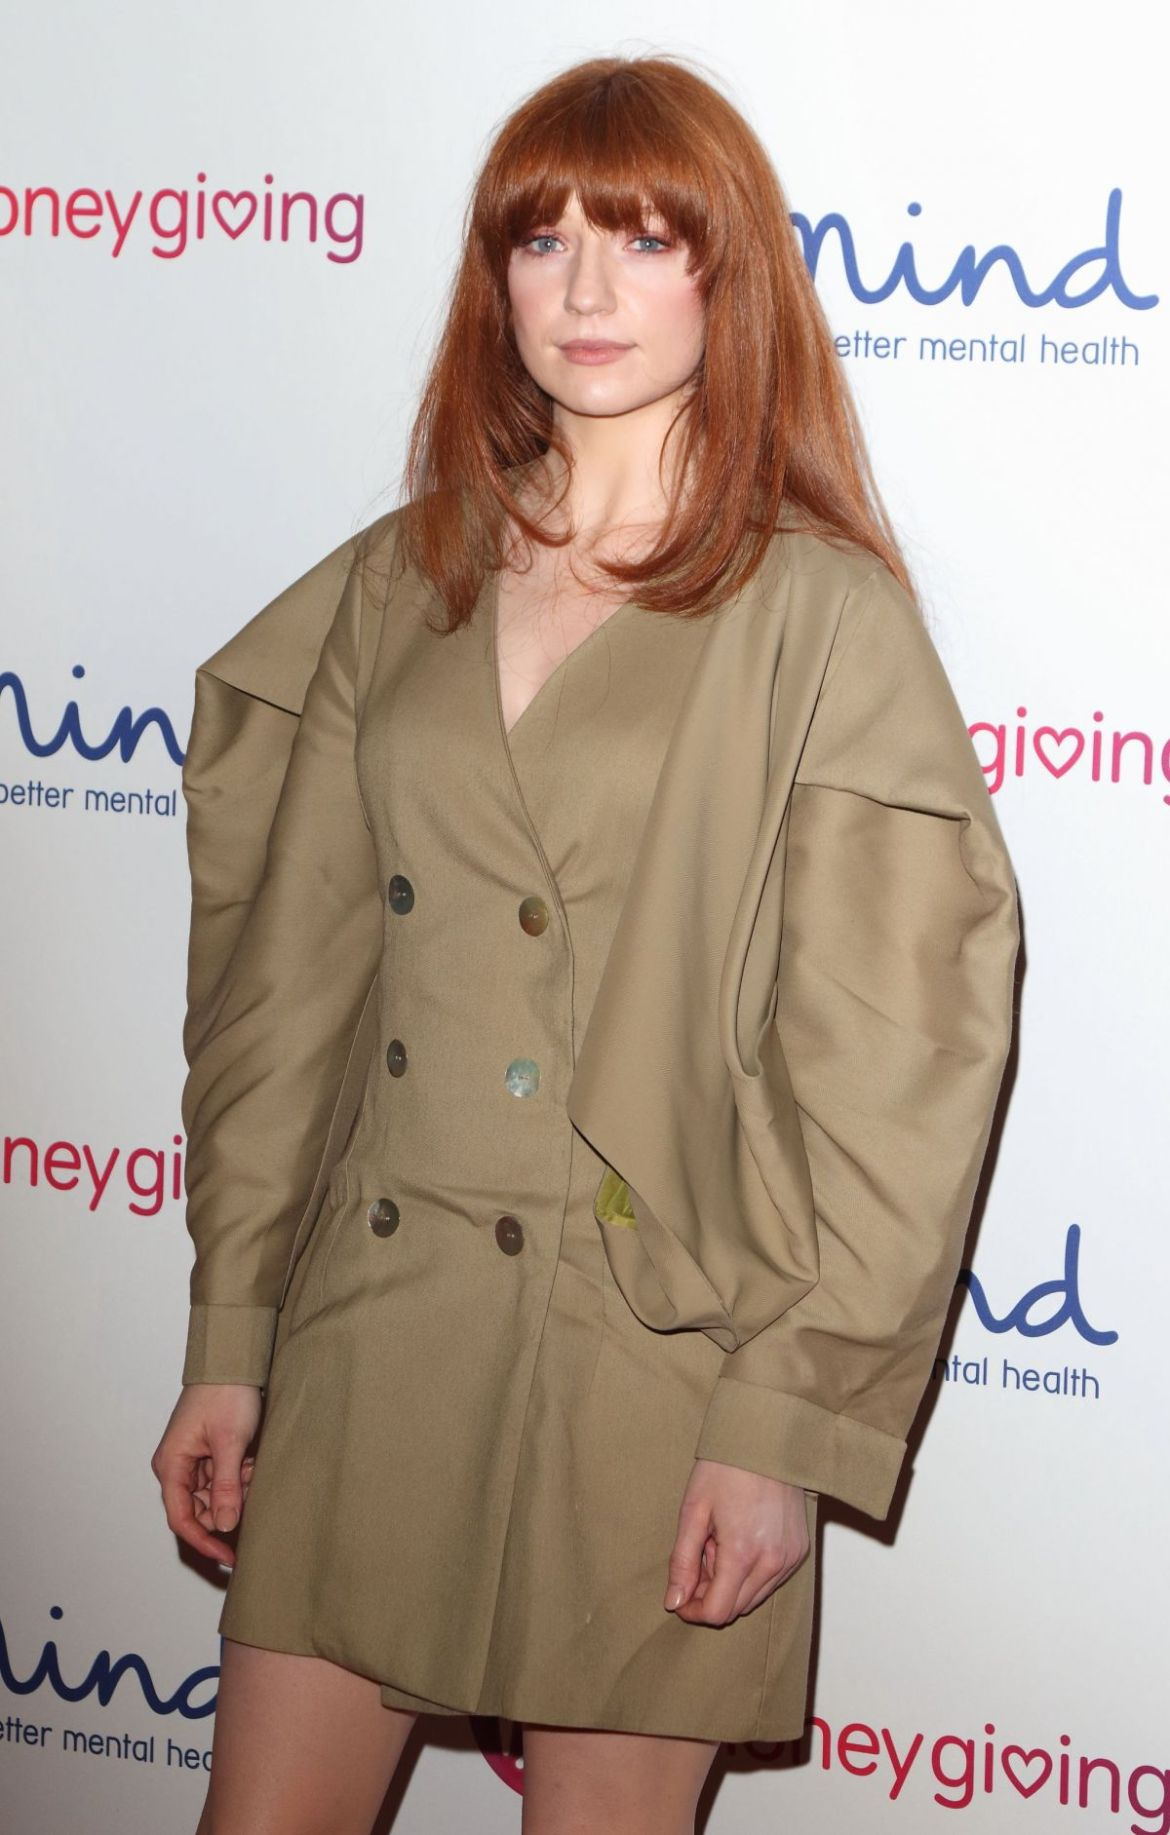 NICOLA ROBERTS at Virgin Money Giving Mind Media Awards in London 11/29/2018